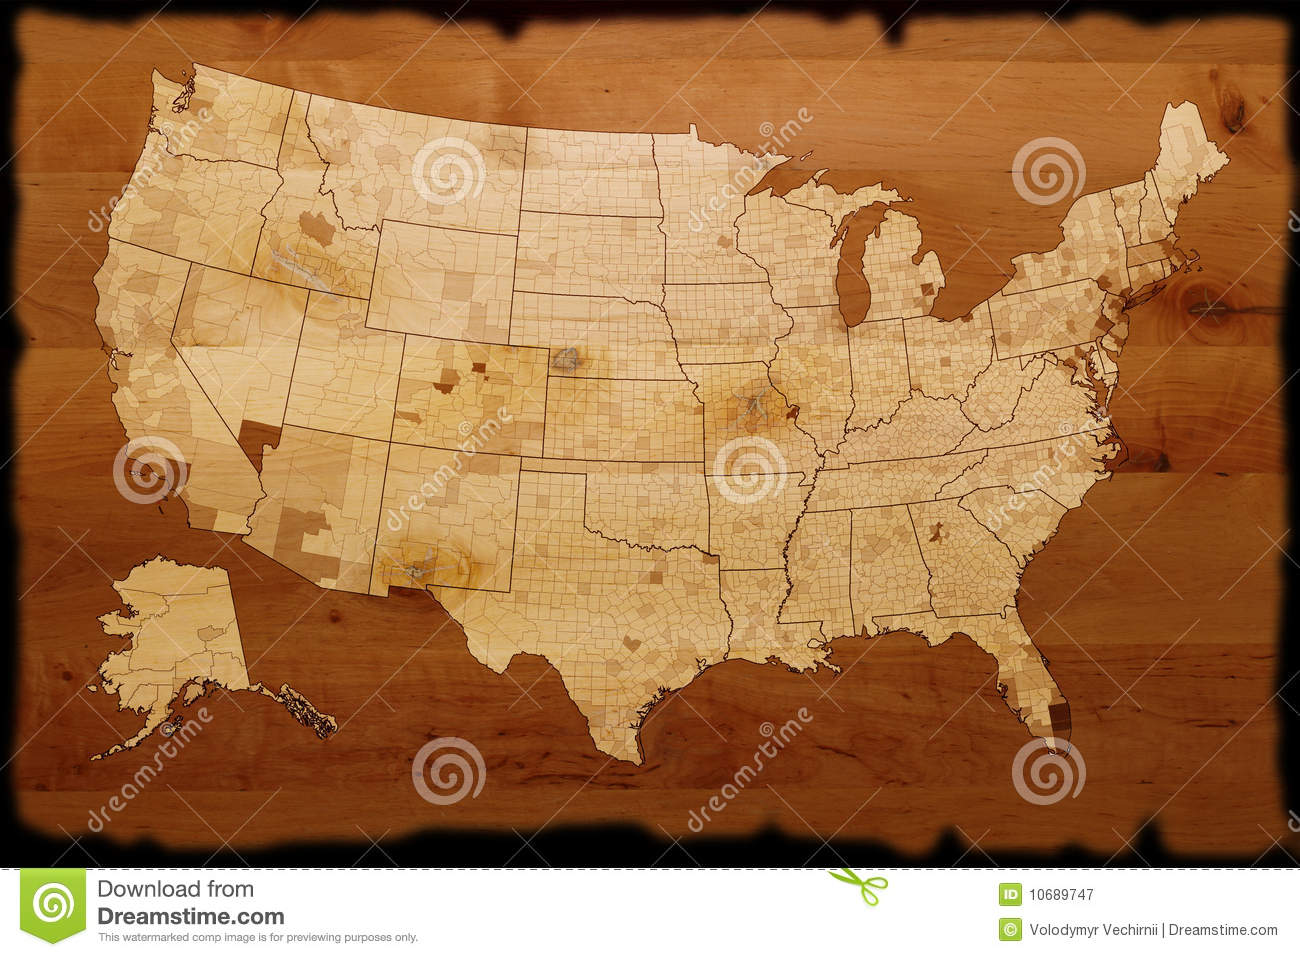 US Map Wallpapers Wallpaper Cave Wallpaper Maps Of USA - Us map screensaver